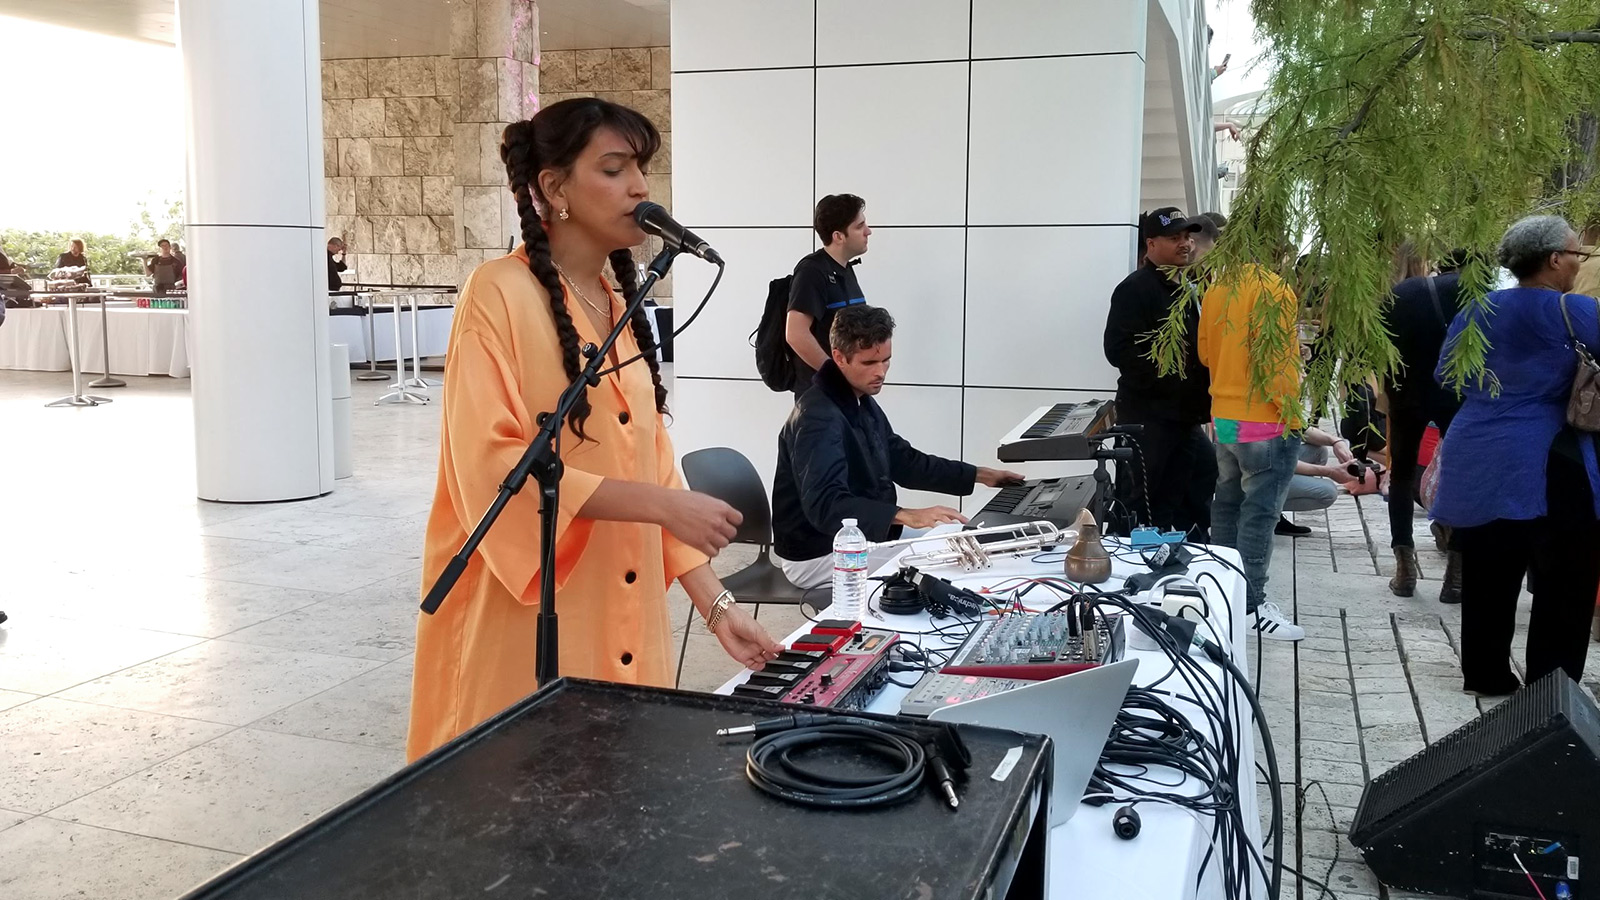 A woman with long braids and flowing orange robes stands at a DJ booth, speaking into a microphone on a stand